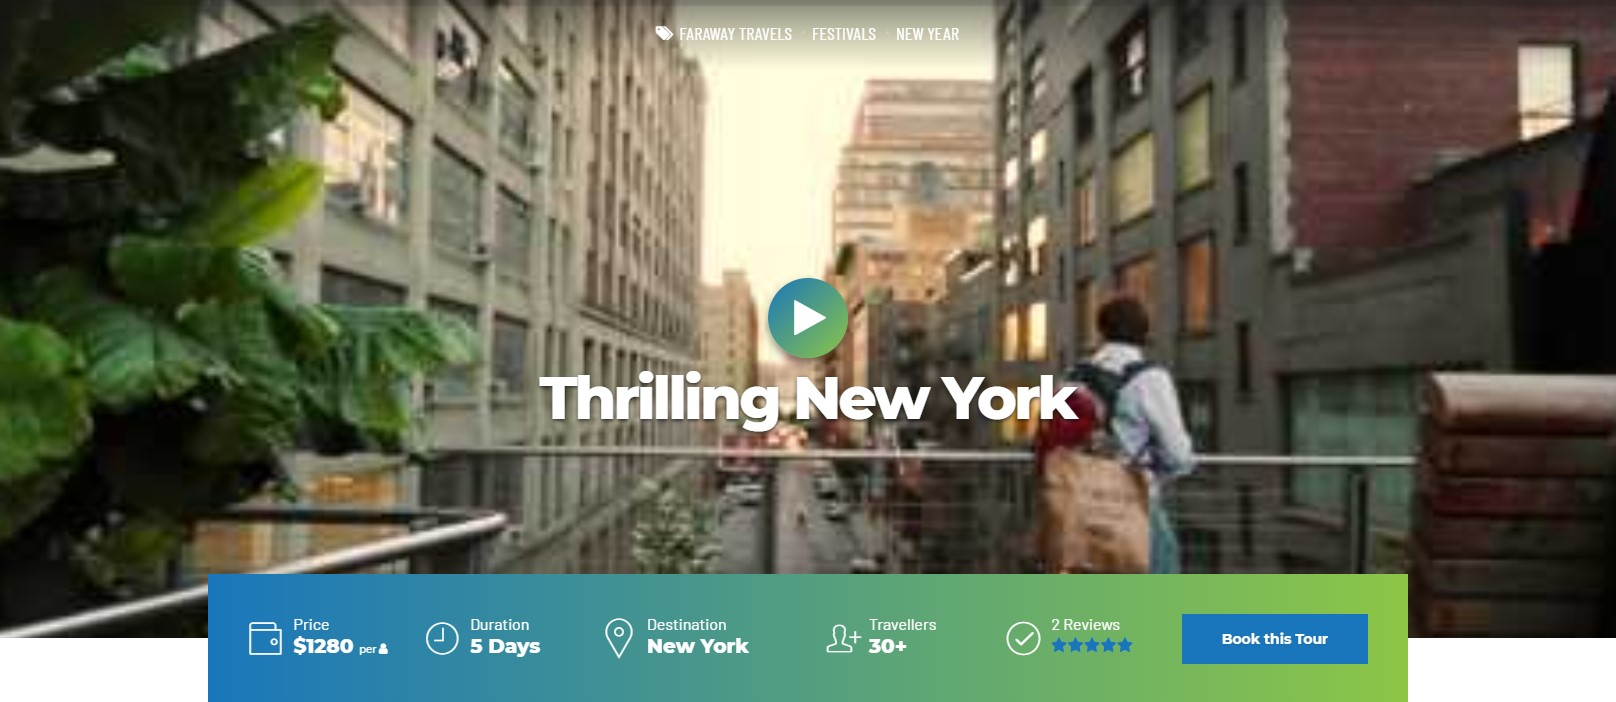 http://documentation.bold-themes.com/travelicious/wp-content/uploads/sites/37/2018/10/header-featured-video.jpg